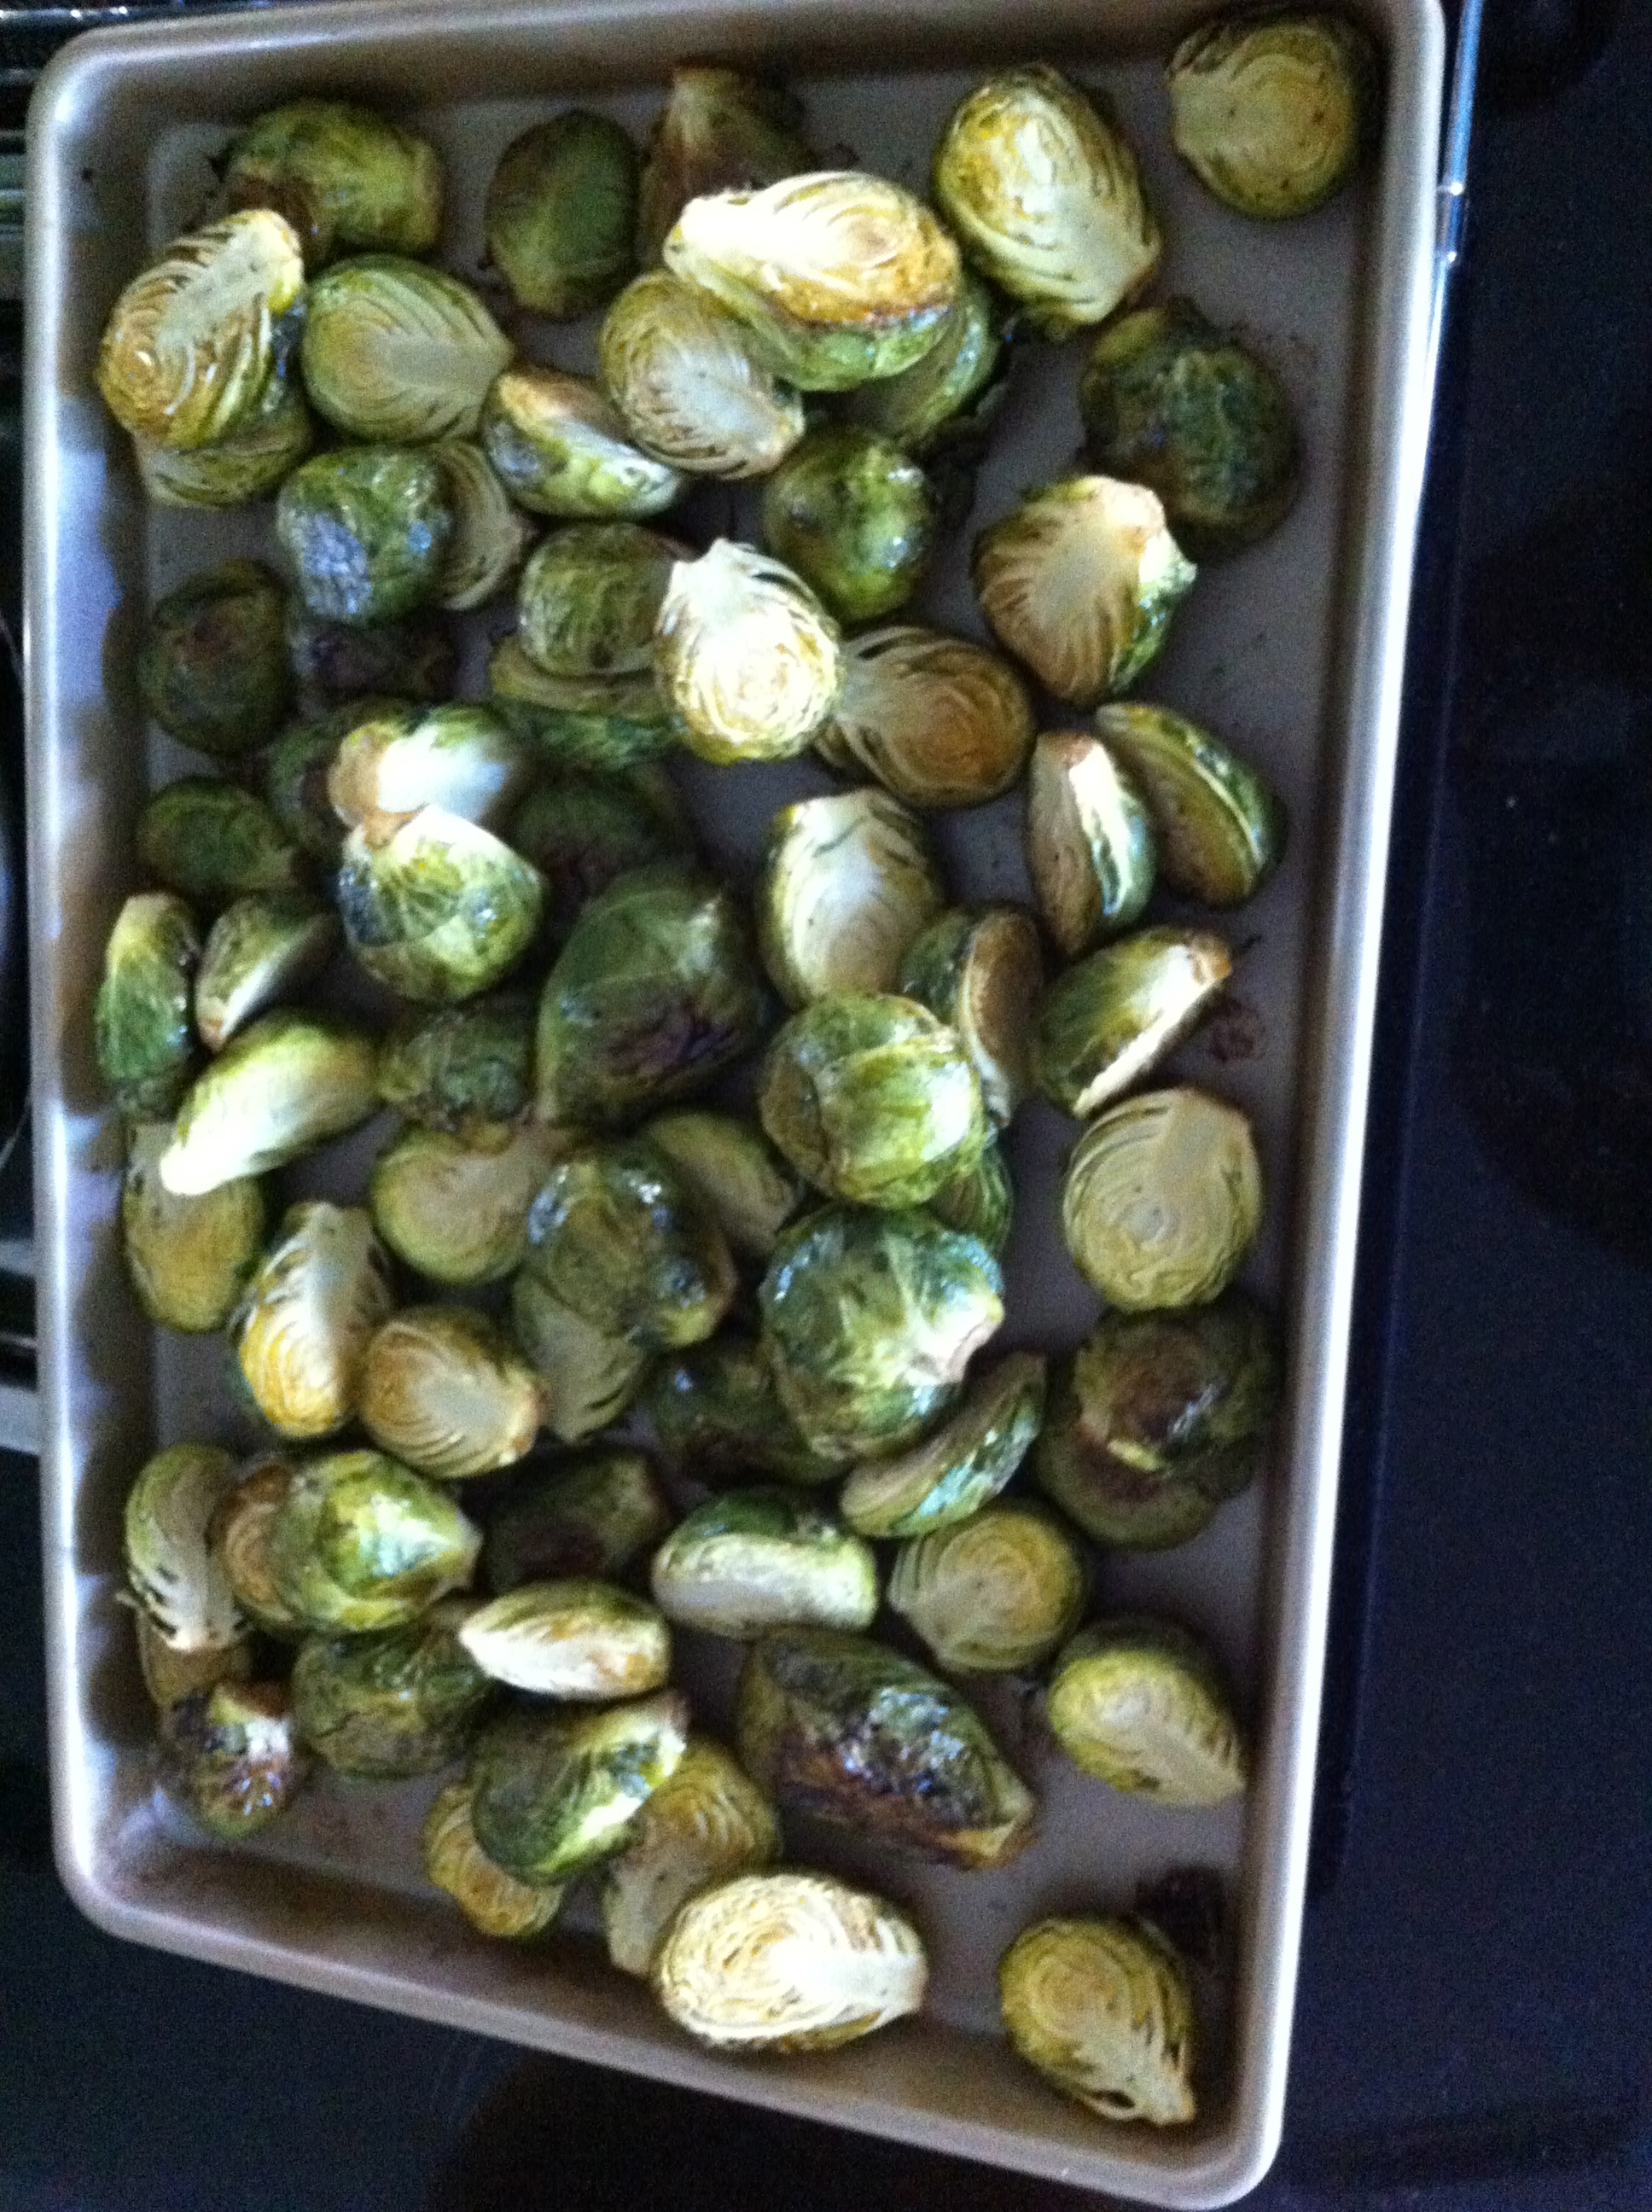 Oven Roasted Brussel Sprouts with Truffle Oil. Naturally gluten-free.